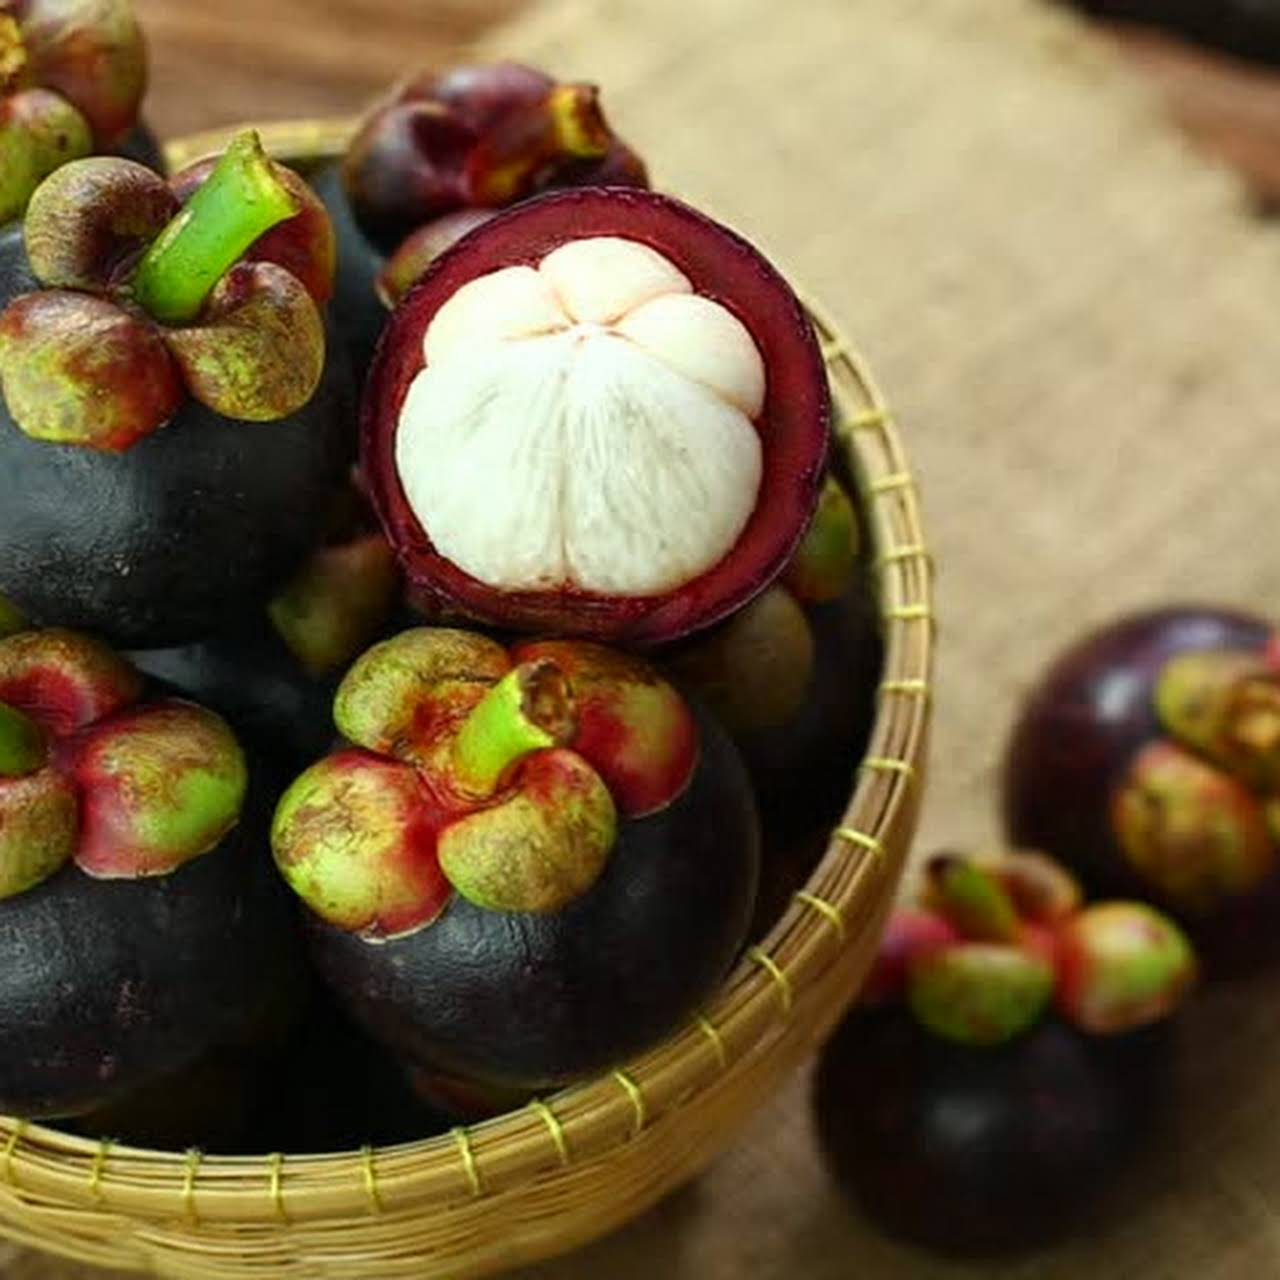 Thanima fruits and spices - Organic fruits and spices from